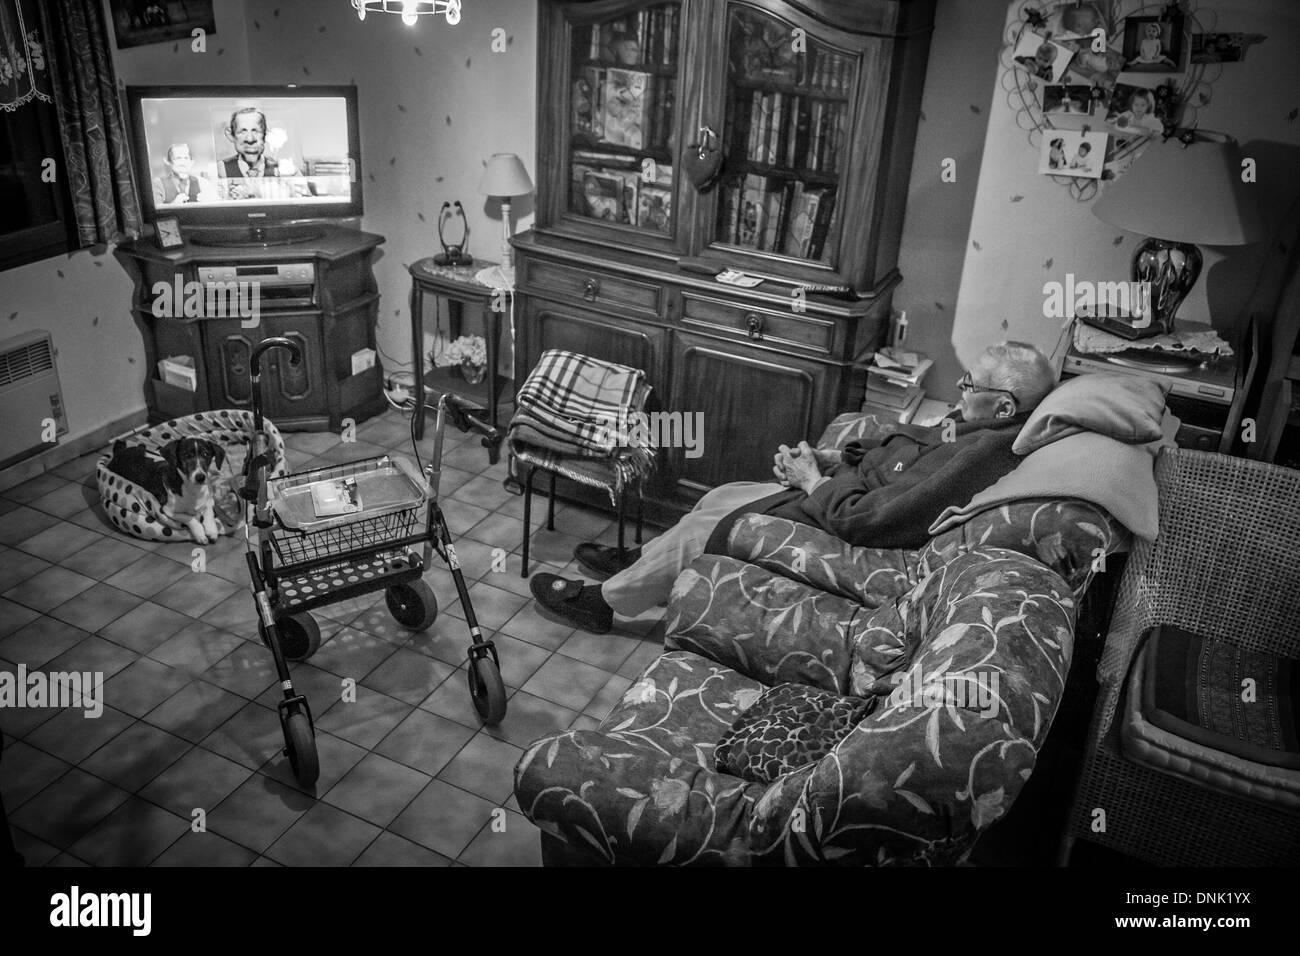 ILLUSTRATION OF AGEING AT HOME, ELDERLY PERSON AT HOME WATCHING TV - Stock Image